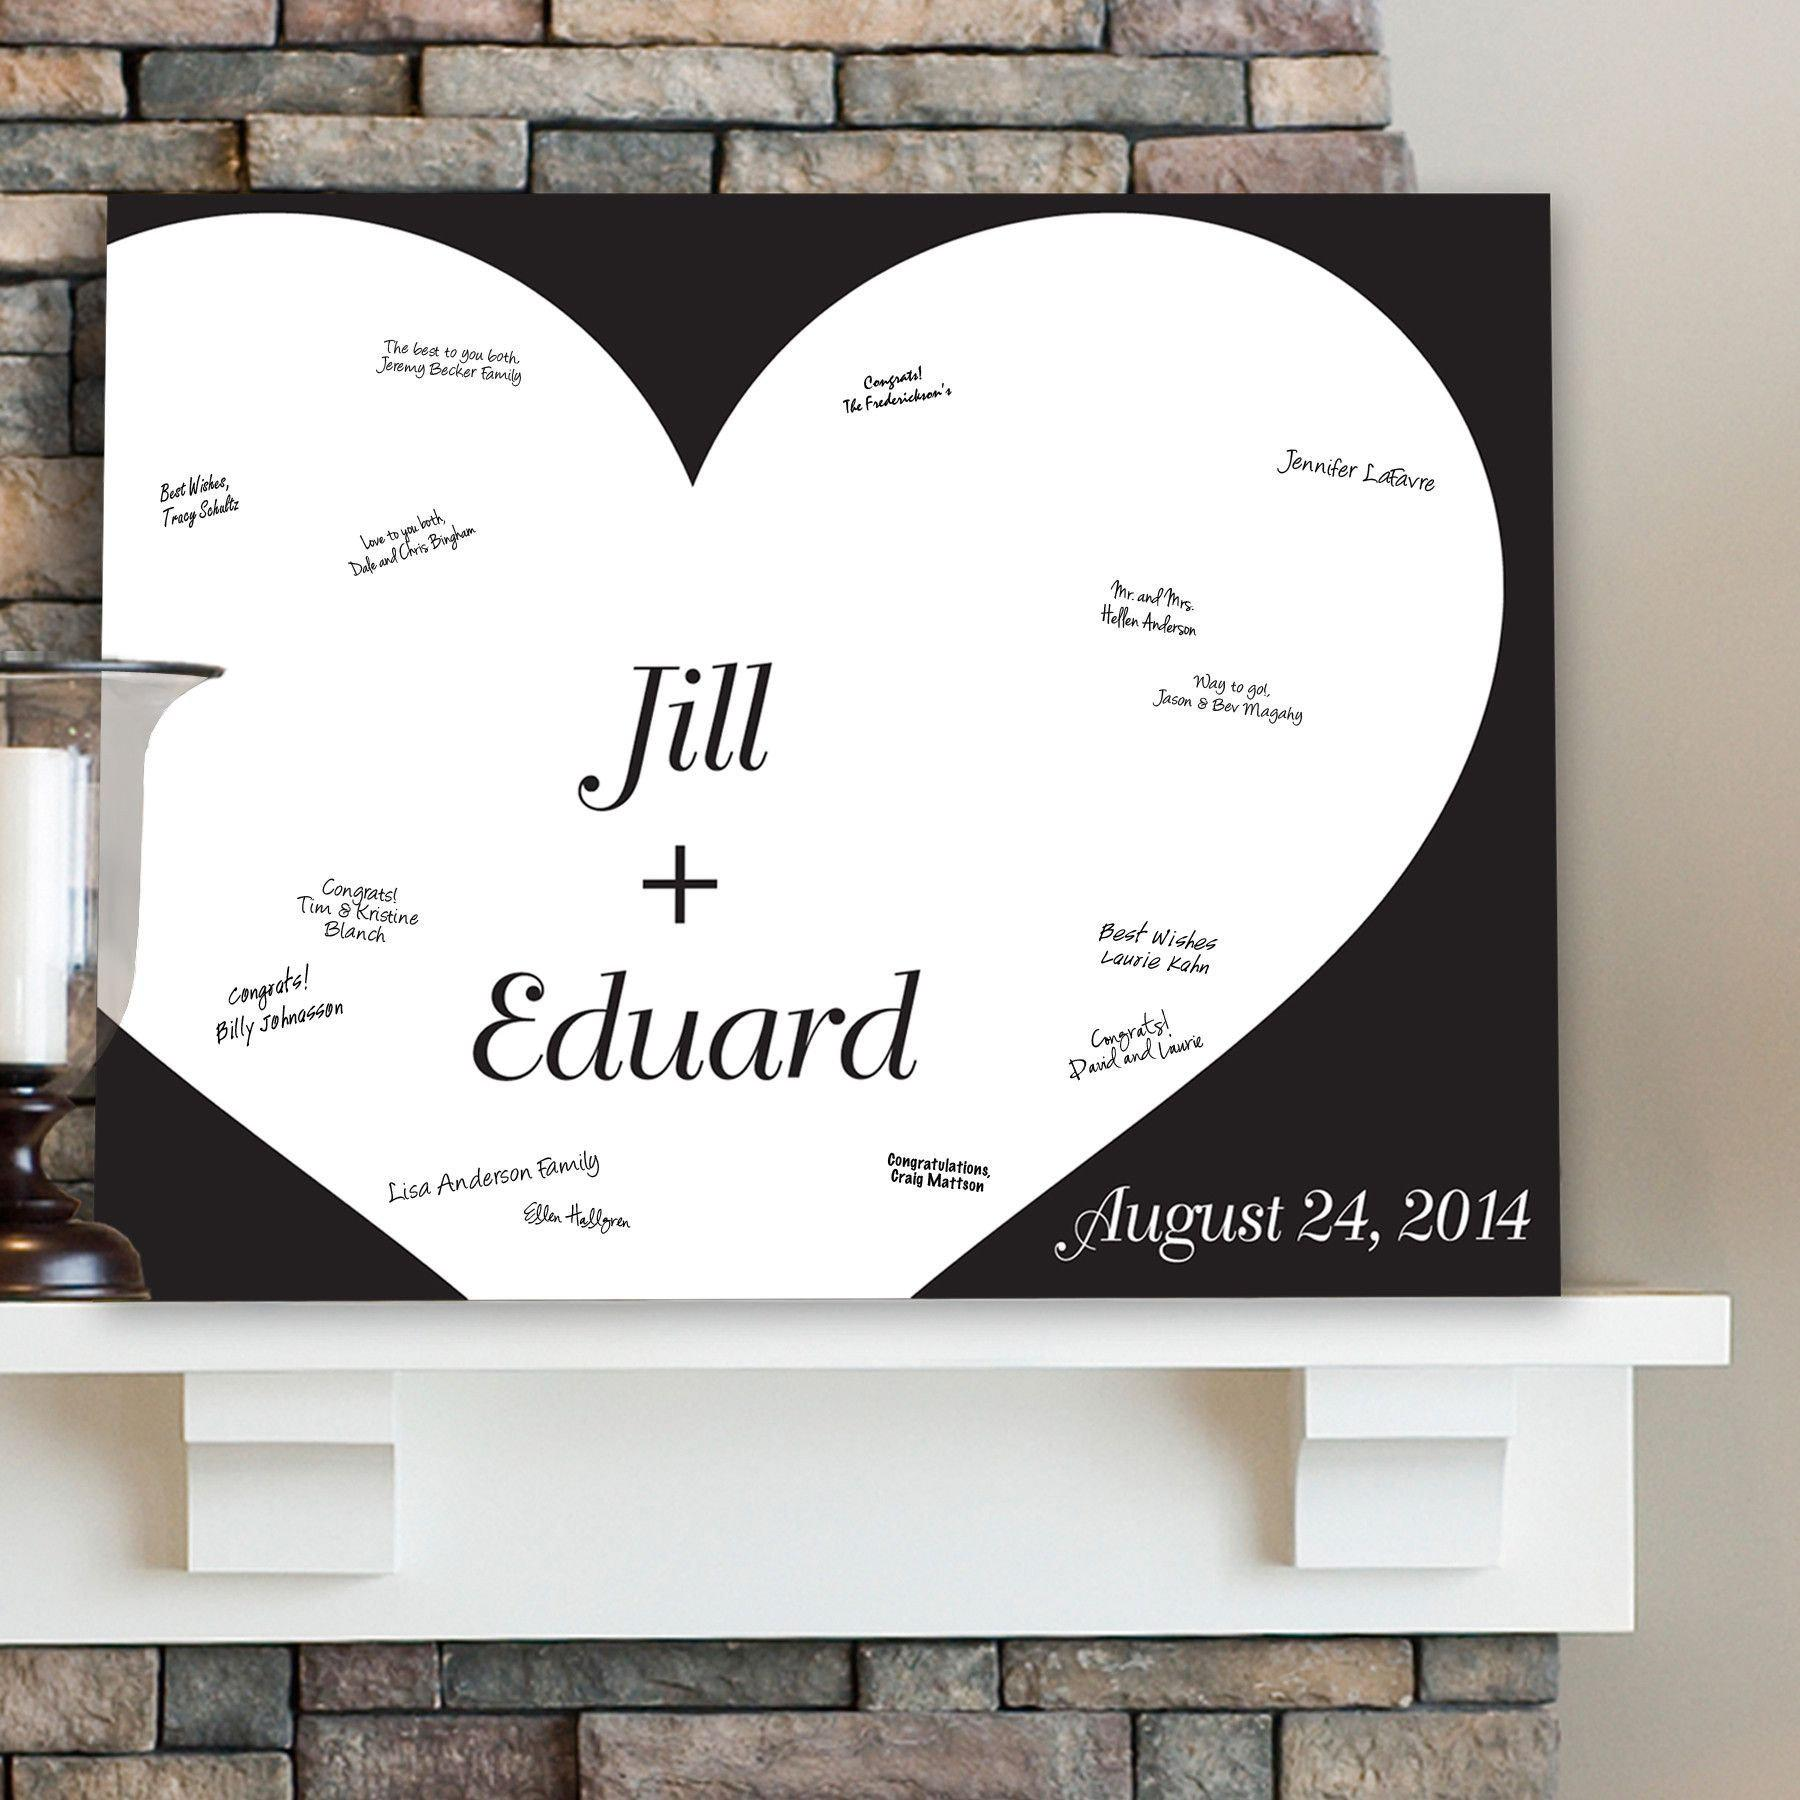 Personalized-Guestbook-Canvas-Always-in-Love